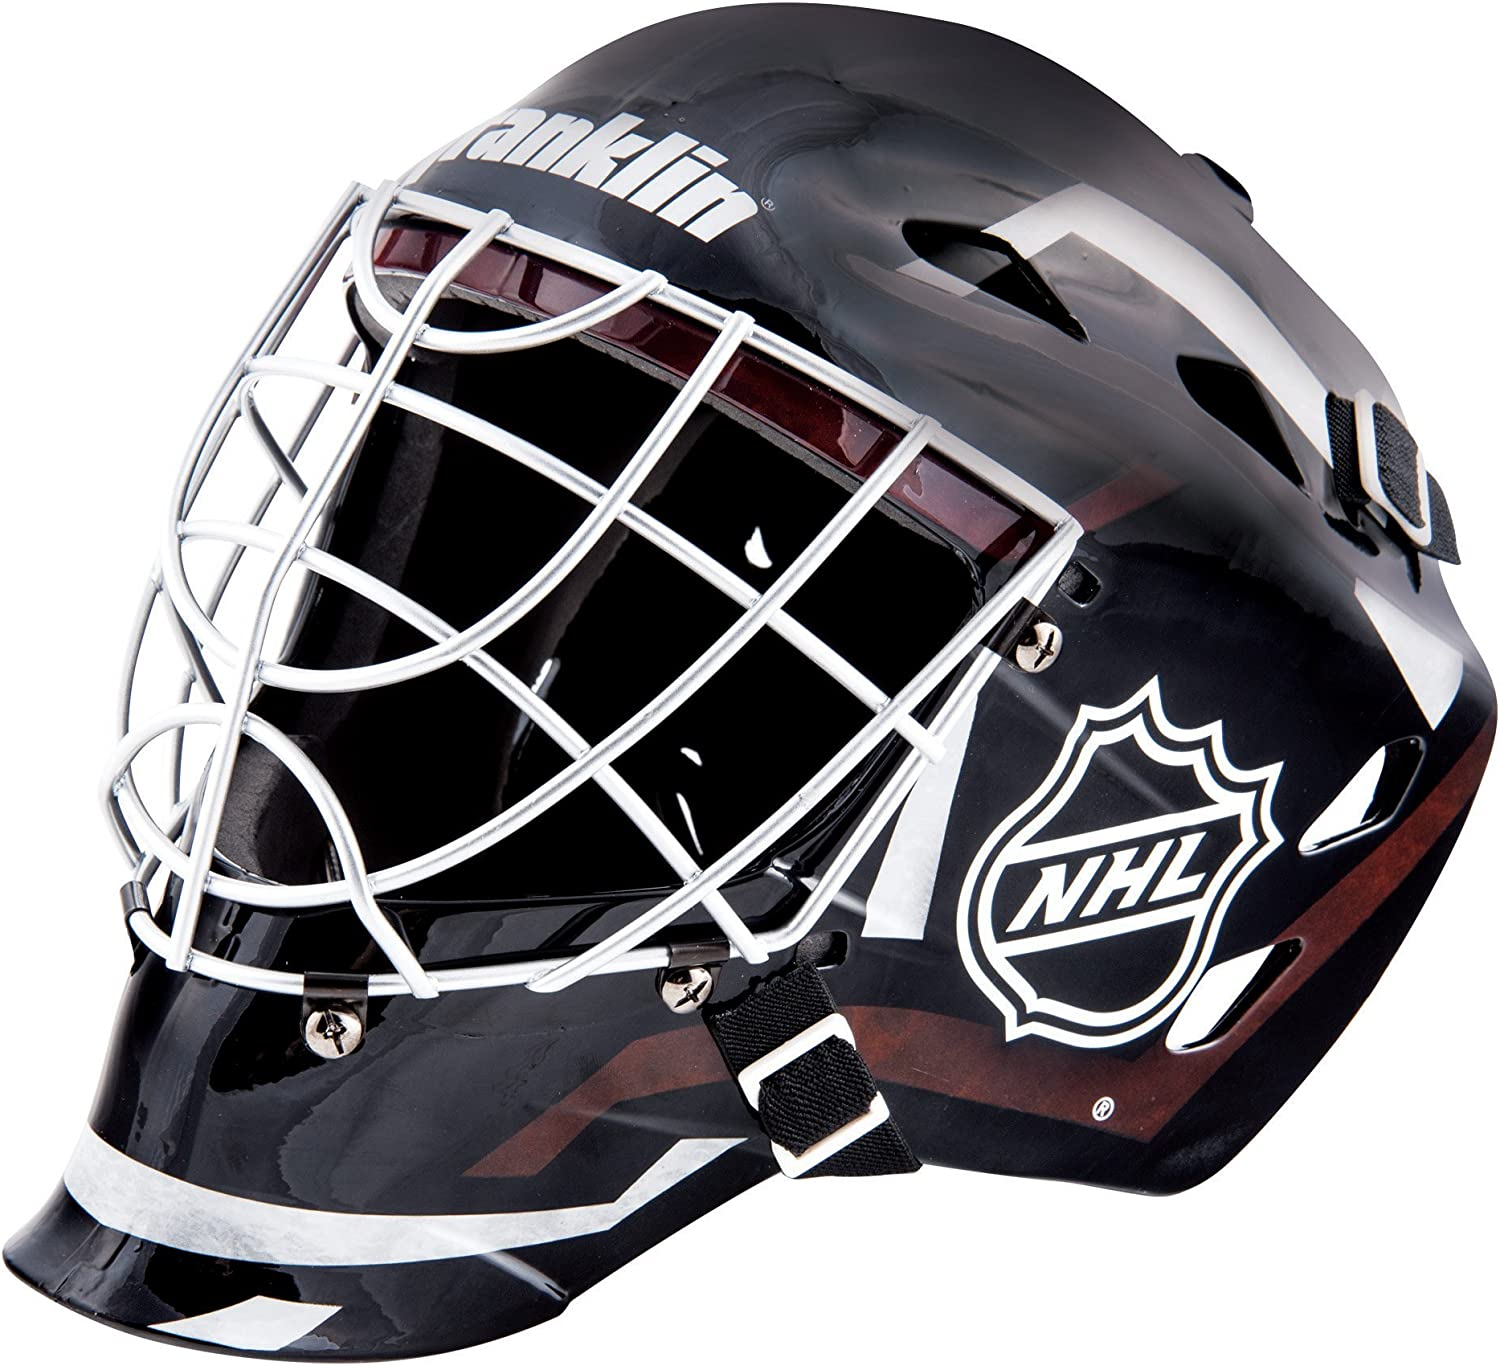 Franklin Sports Youth Hockey Goalie Masks -Street Hockey Goalie Mask for Kids - GFM1500 - Perfect for Street and Indoor Hockey - NHL : Sports & Outdoors